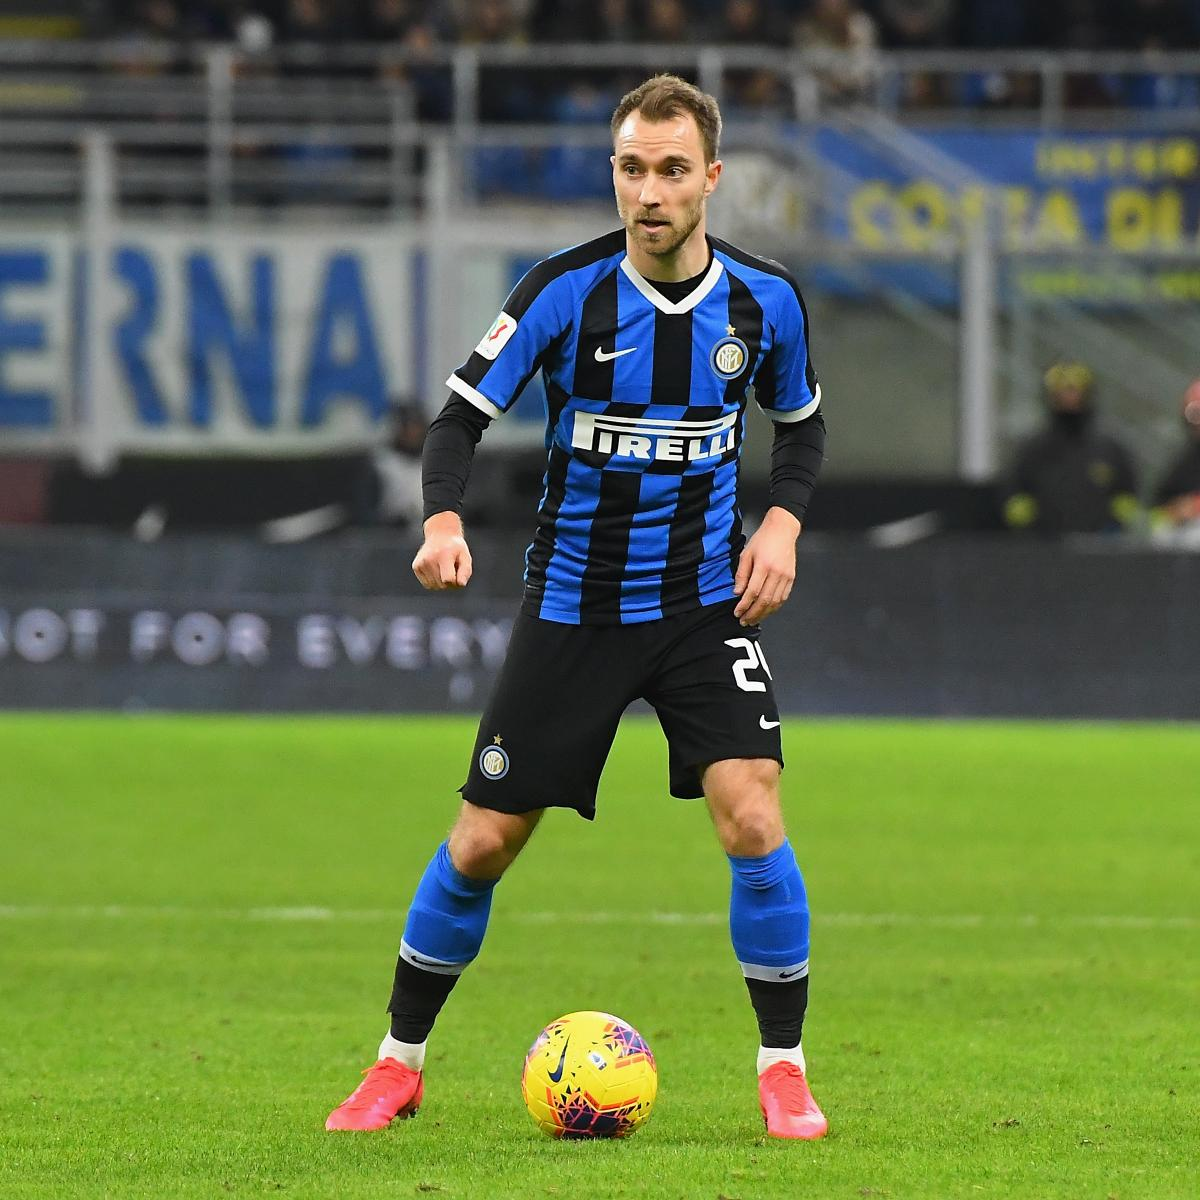 antonio conte christian eriksen s inter milan debut came earlier than planned bleacher report latest news videos and highlights christian eriksen s inter milan debut